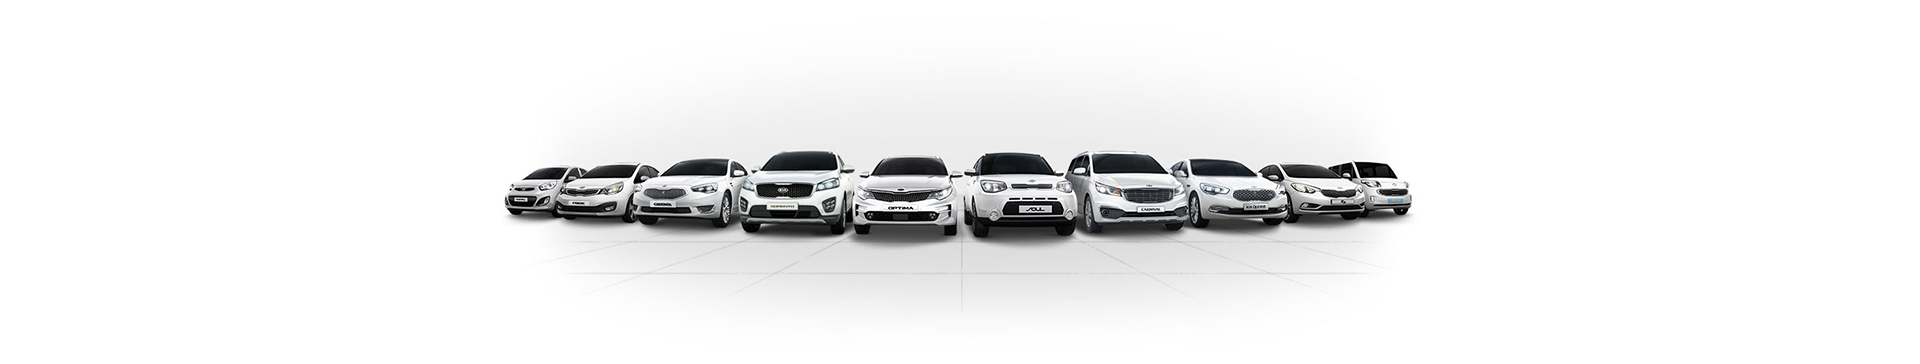 Kia Motors design